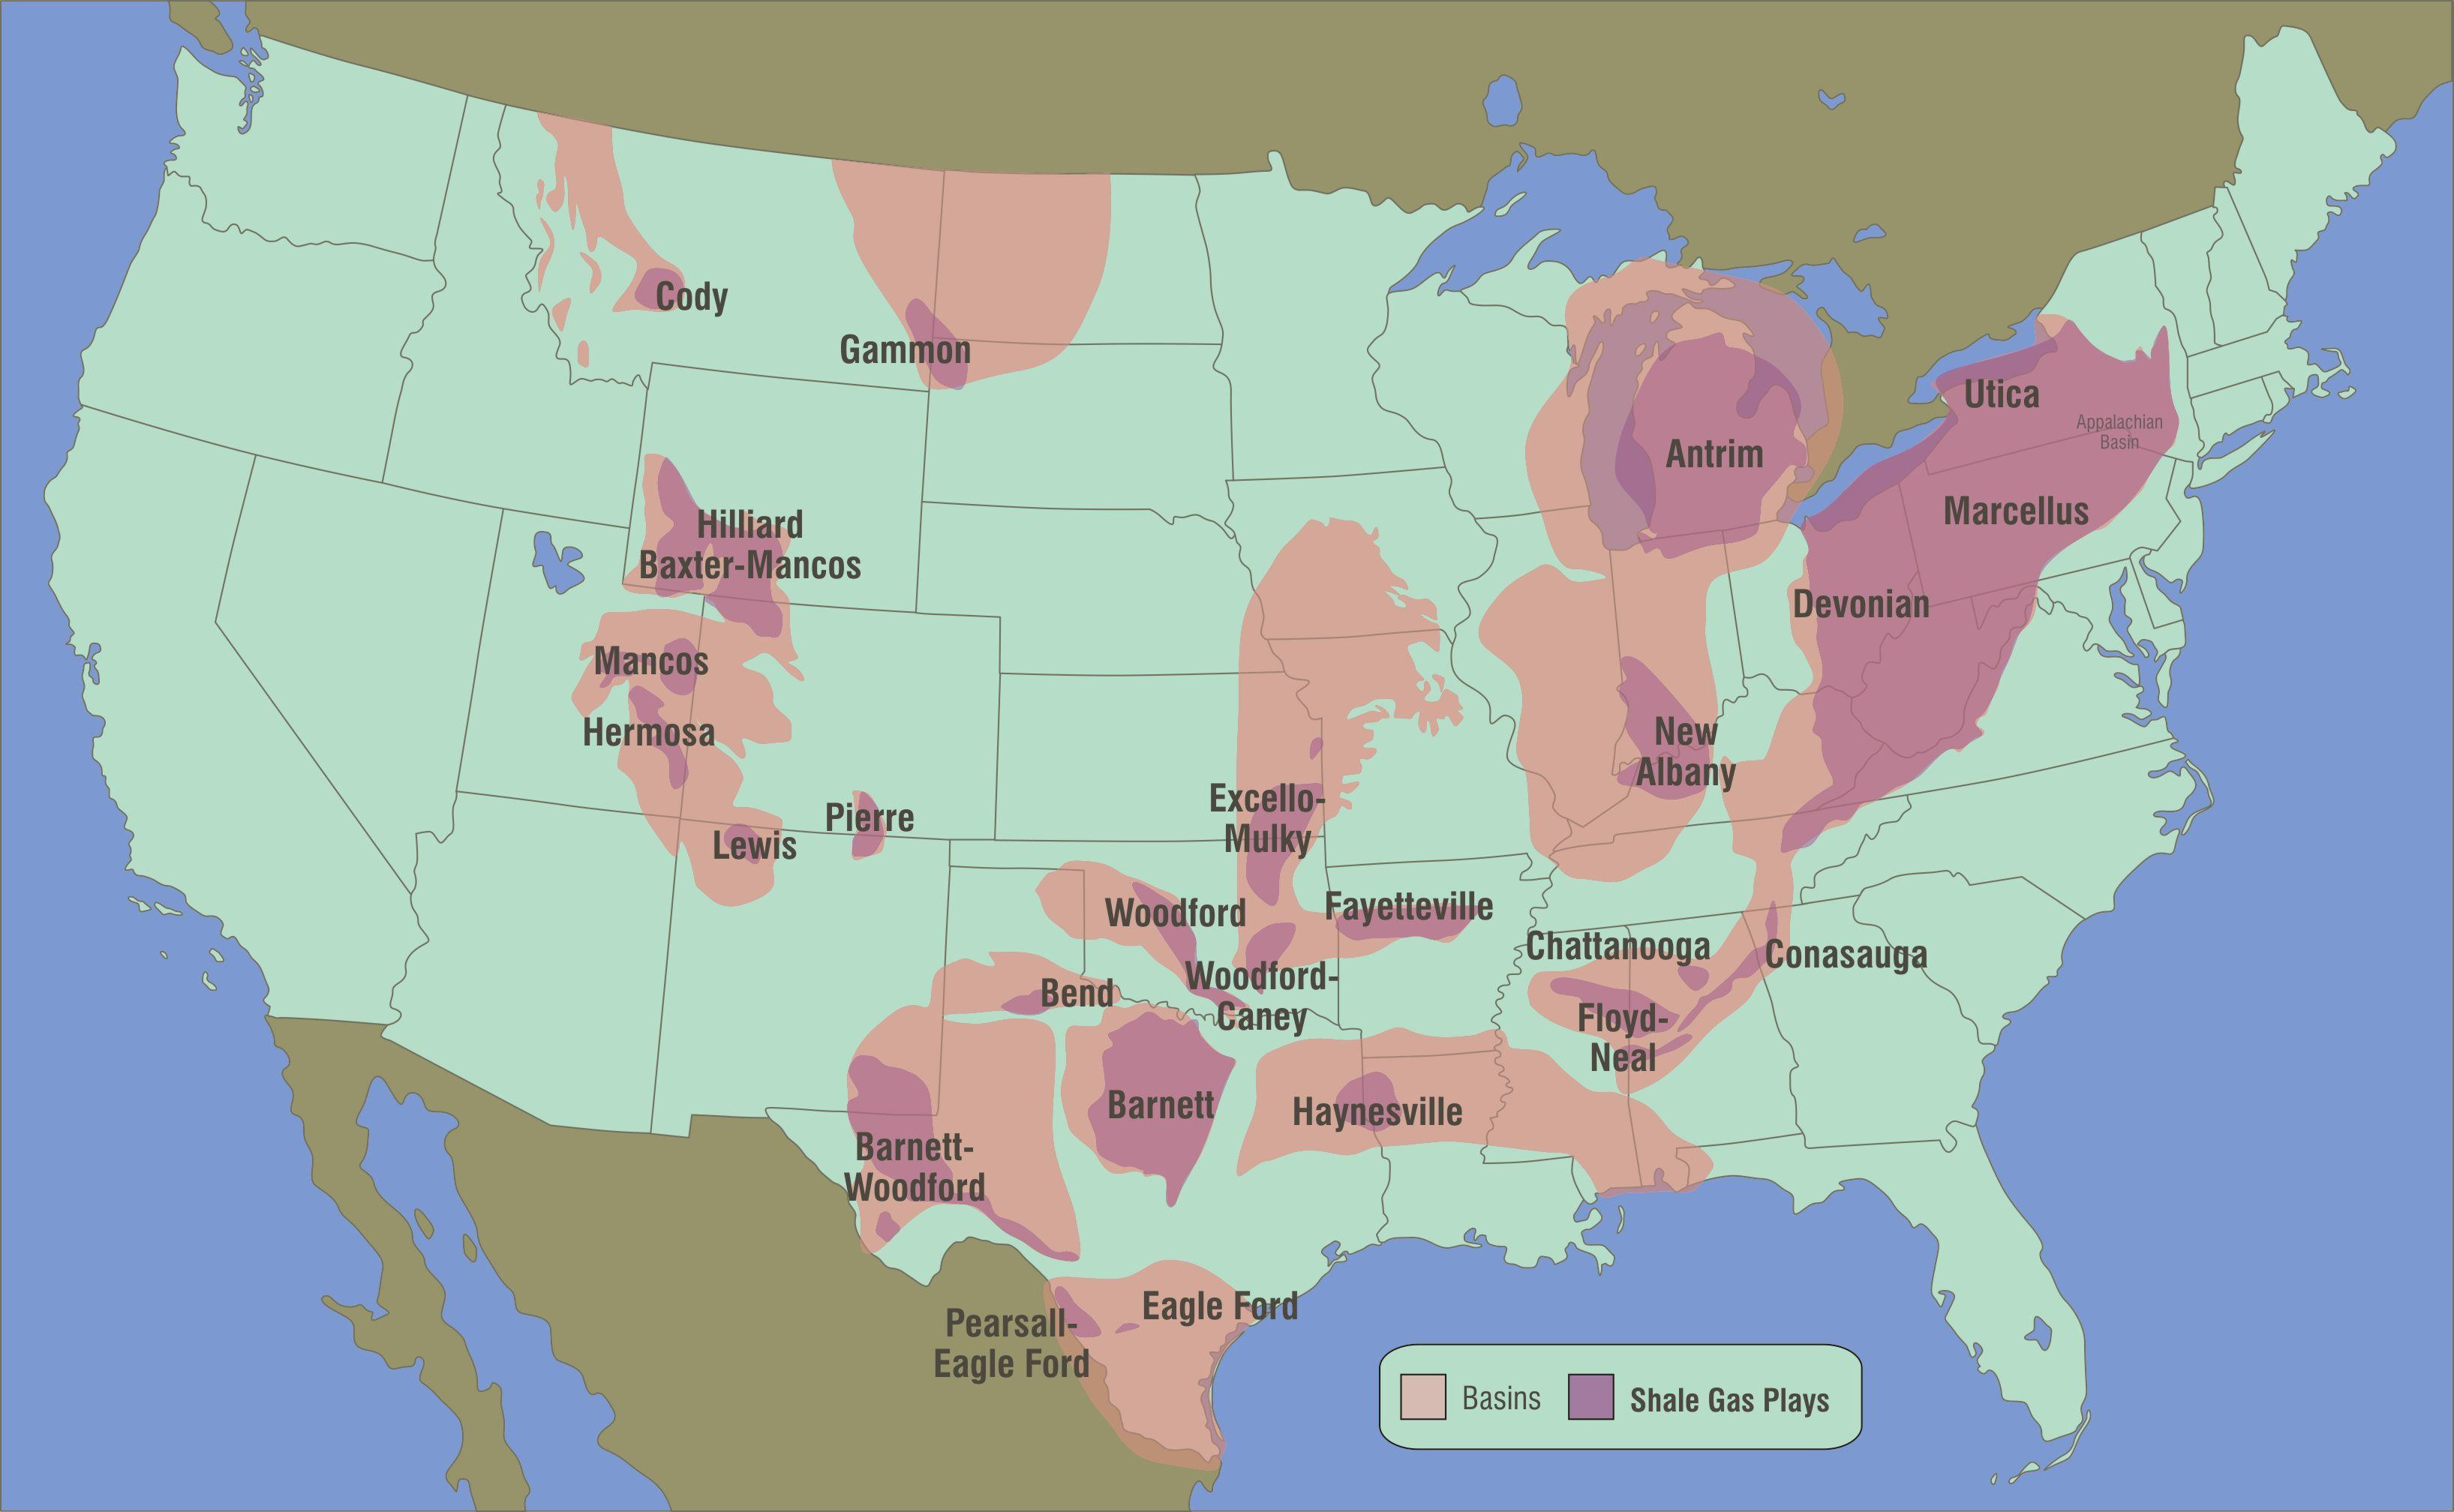 USA Map Of Oil Gas Drilling Fracking Sites And Health Safety - Oil from texas in us map